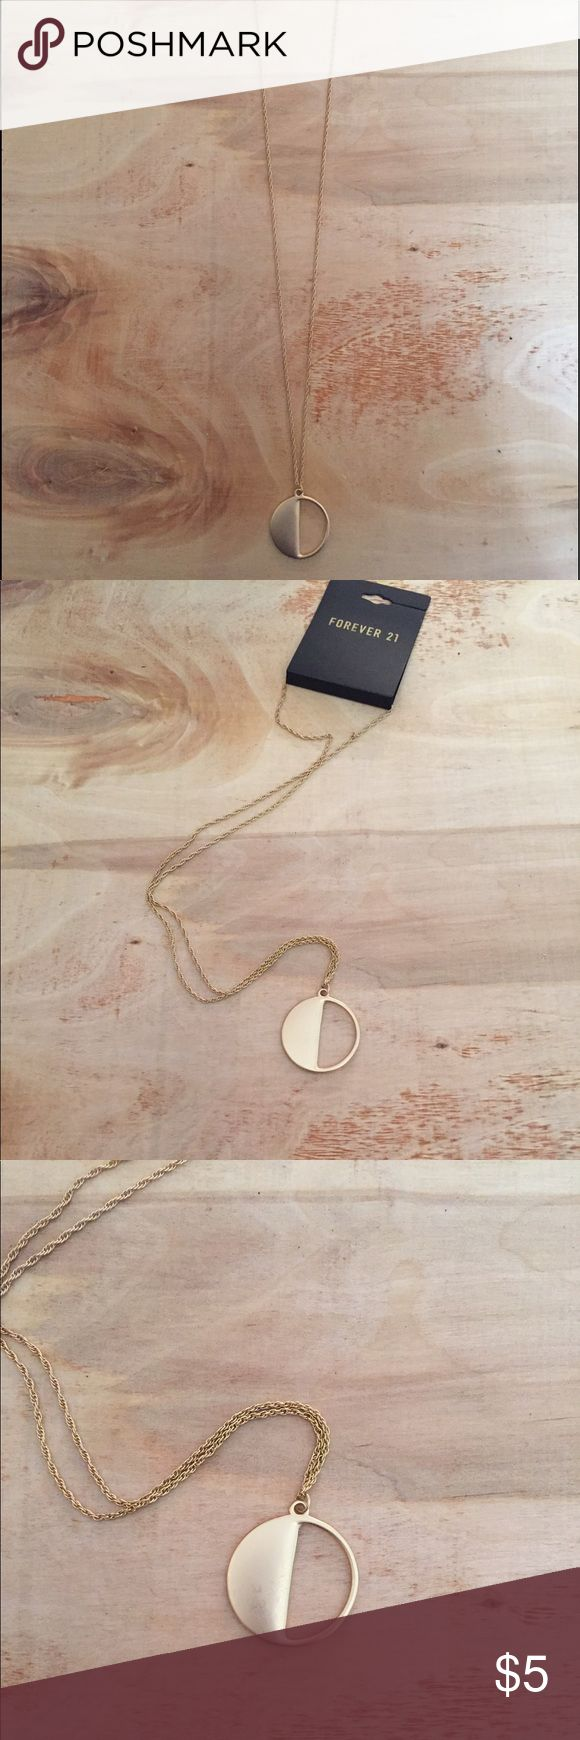 Forever 21. Long gold necklace half circle. New with tags. Never worn. Good condition. Very cute. Forever 21 Jewelry Necklaces